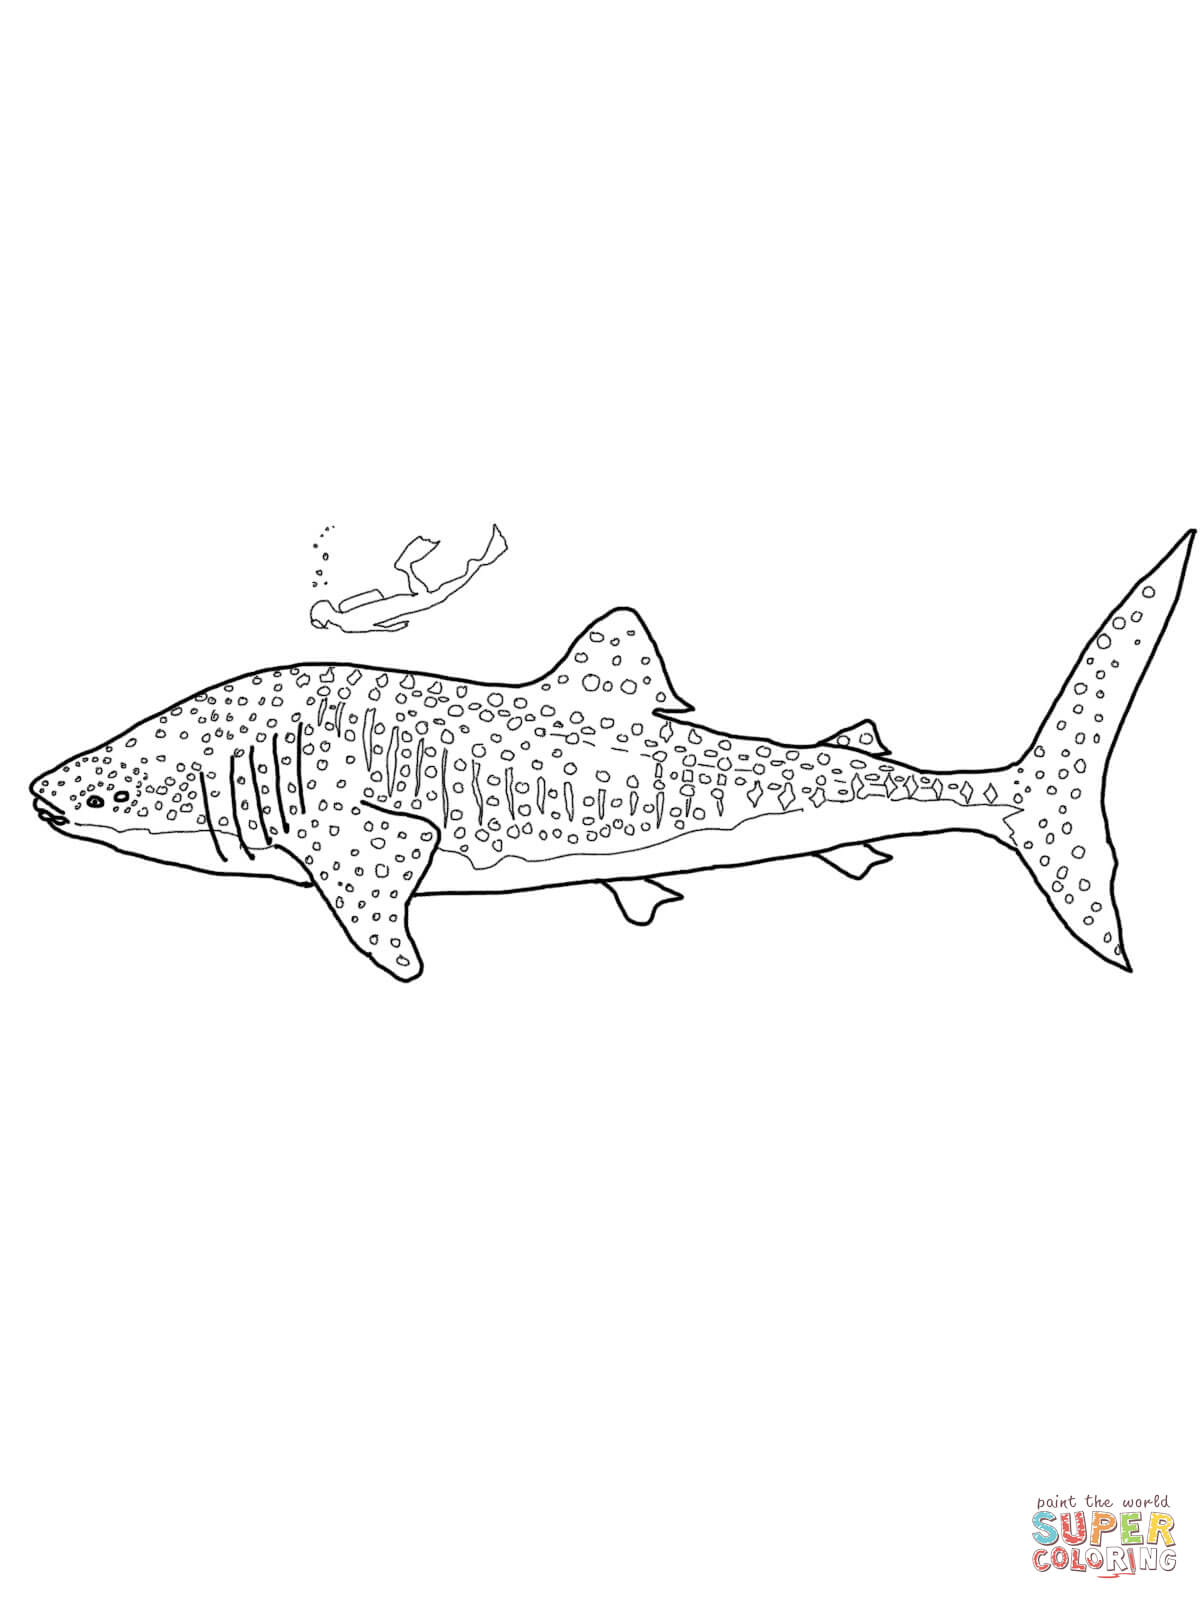 Sharkwhale clipart coloring #10